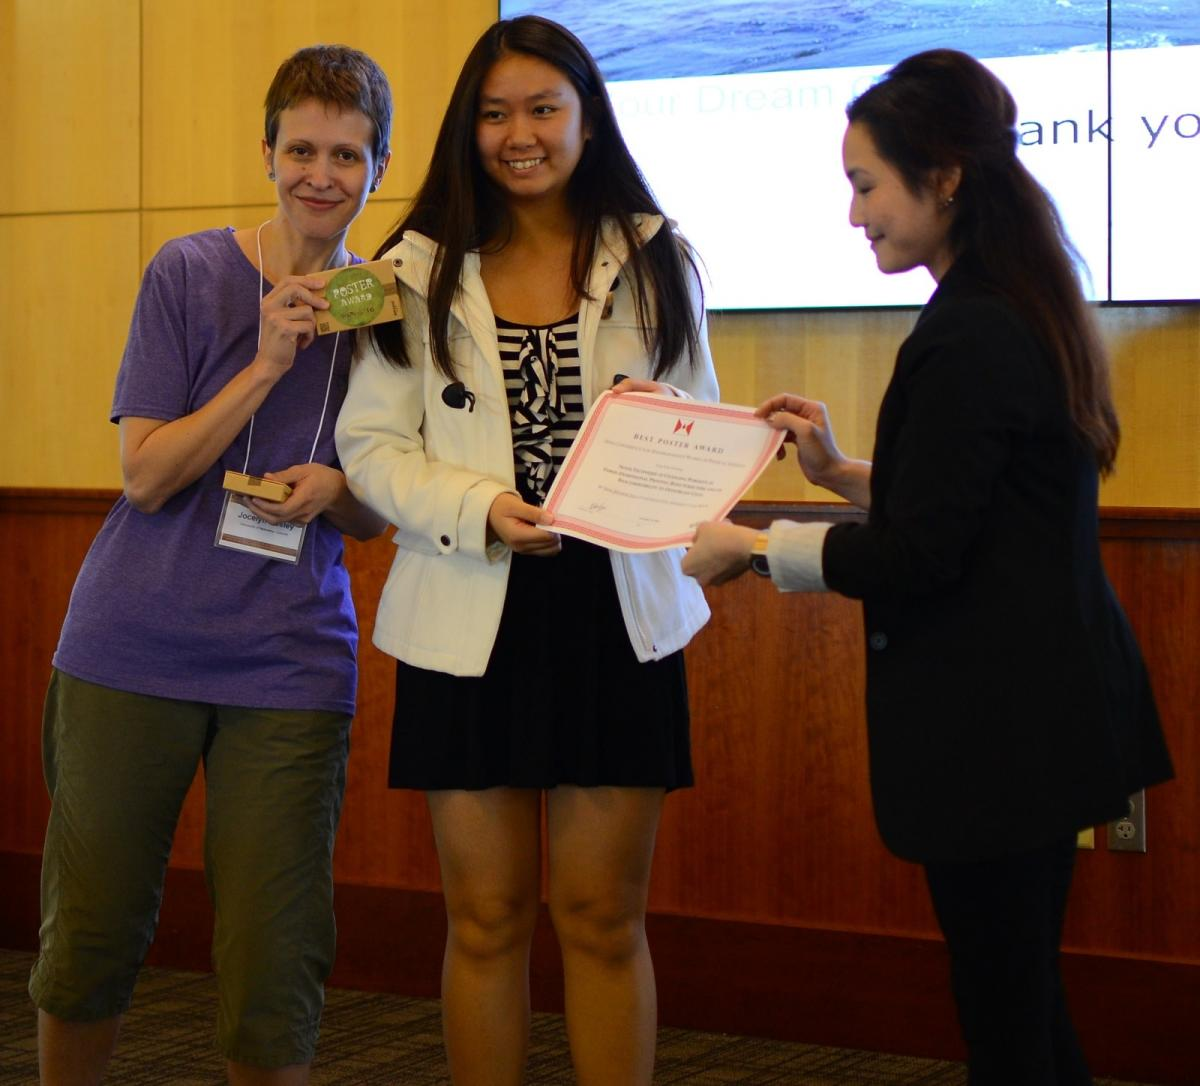 Jocelyn Bosley and Rebecca Lai with poster winner Jennifer Ngo